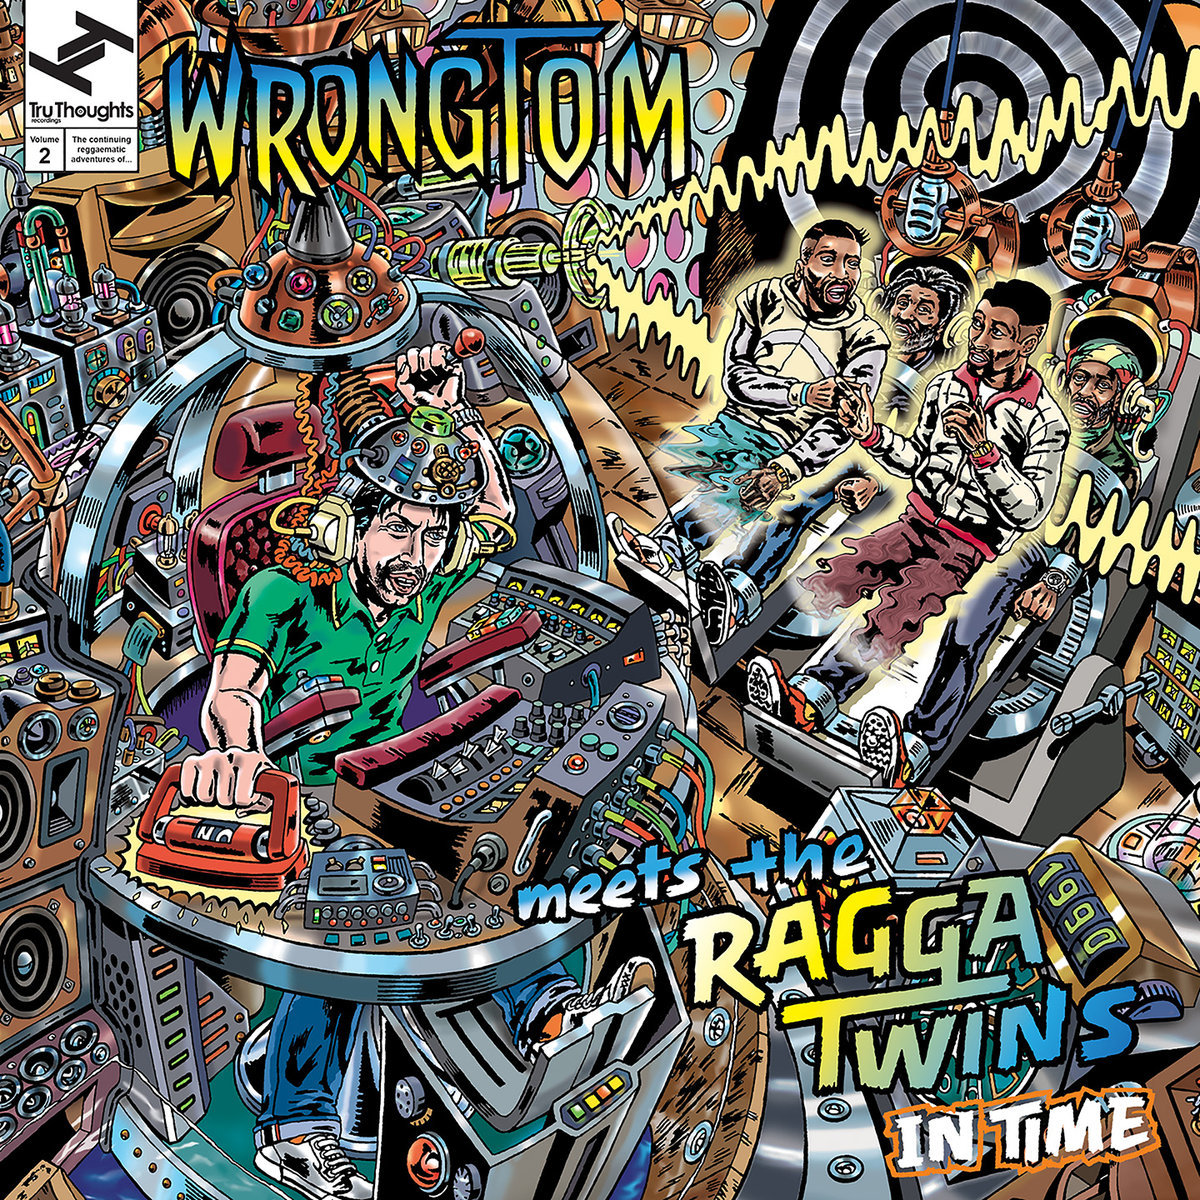 In Time by Wrongtom Meets The Ragga Twins image